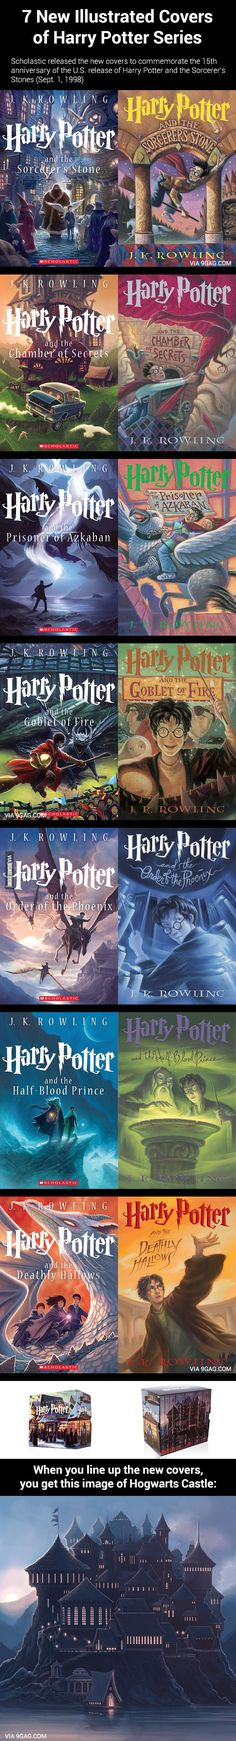 7 New Illustrated Covers of Harry Potter Series